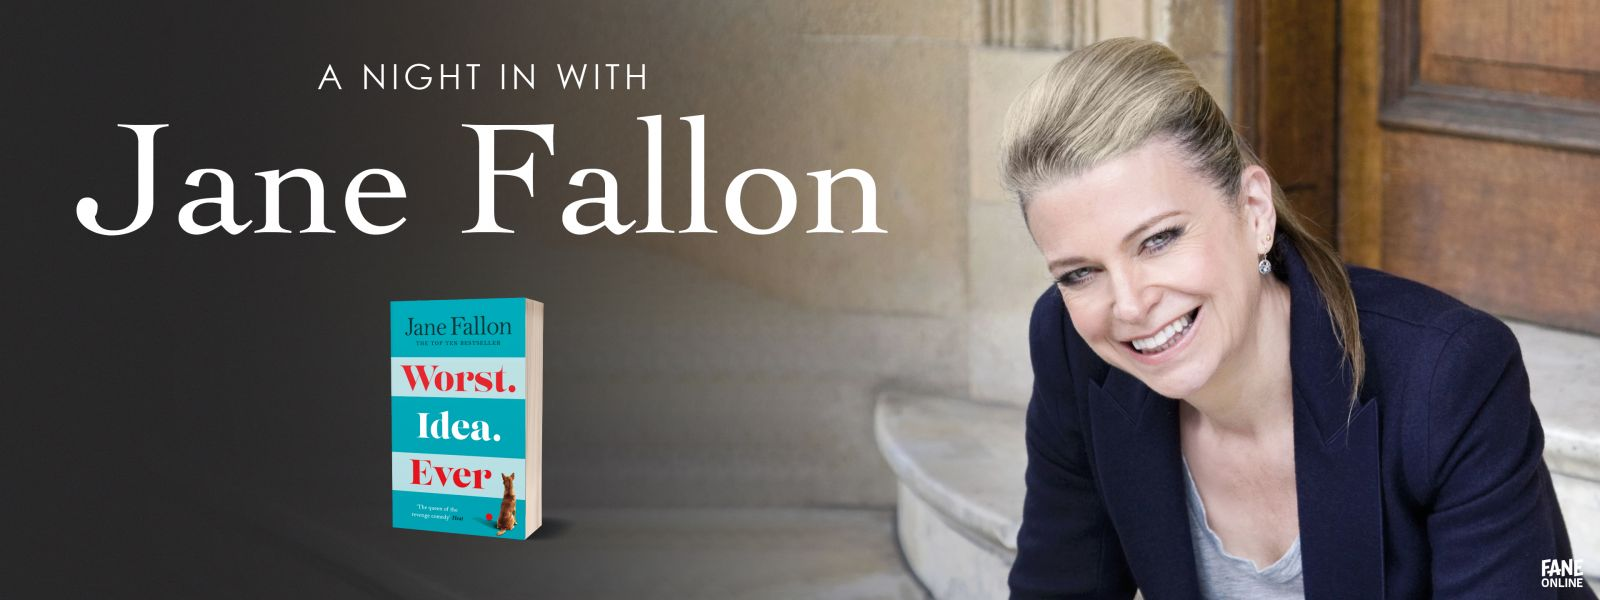 A Night In with Jane Fallon